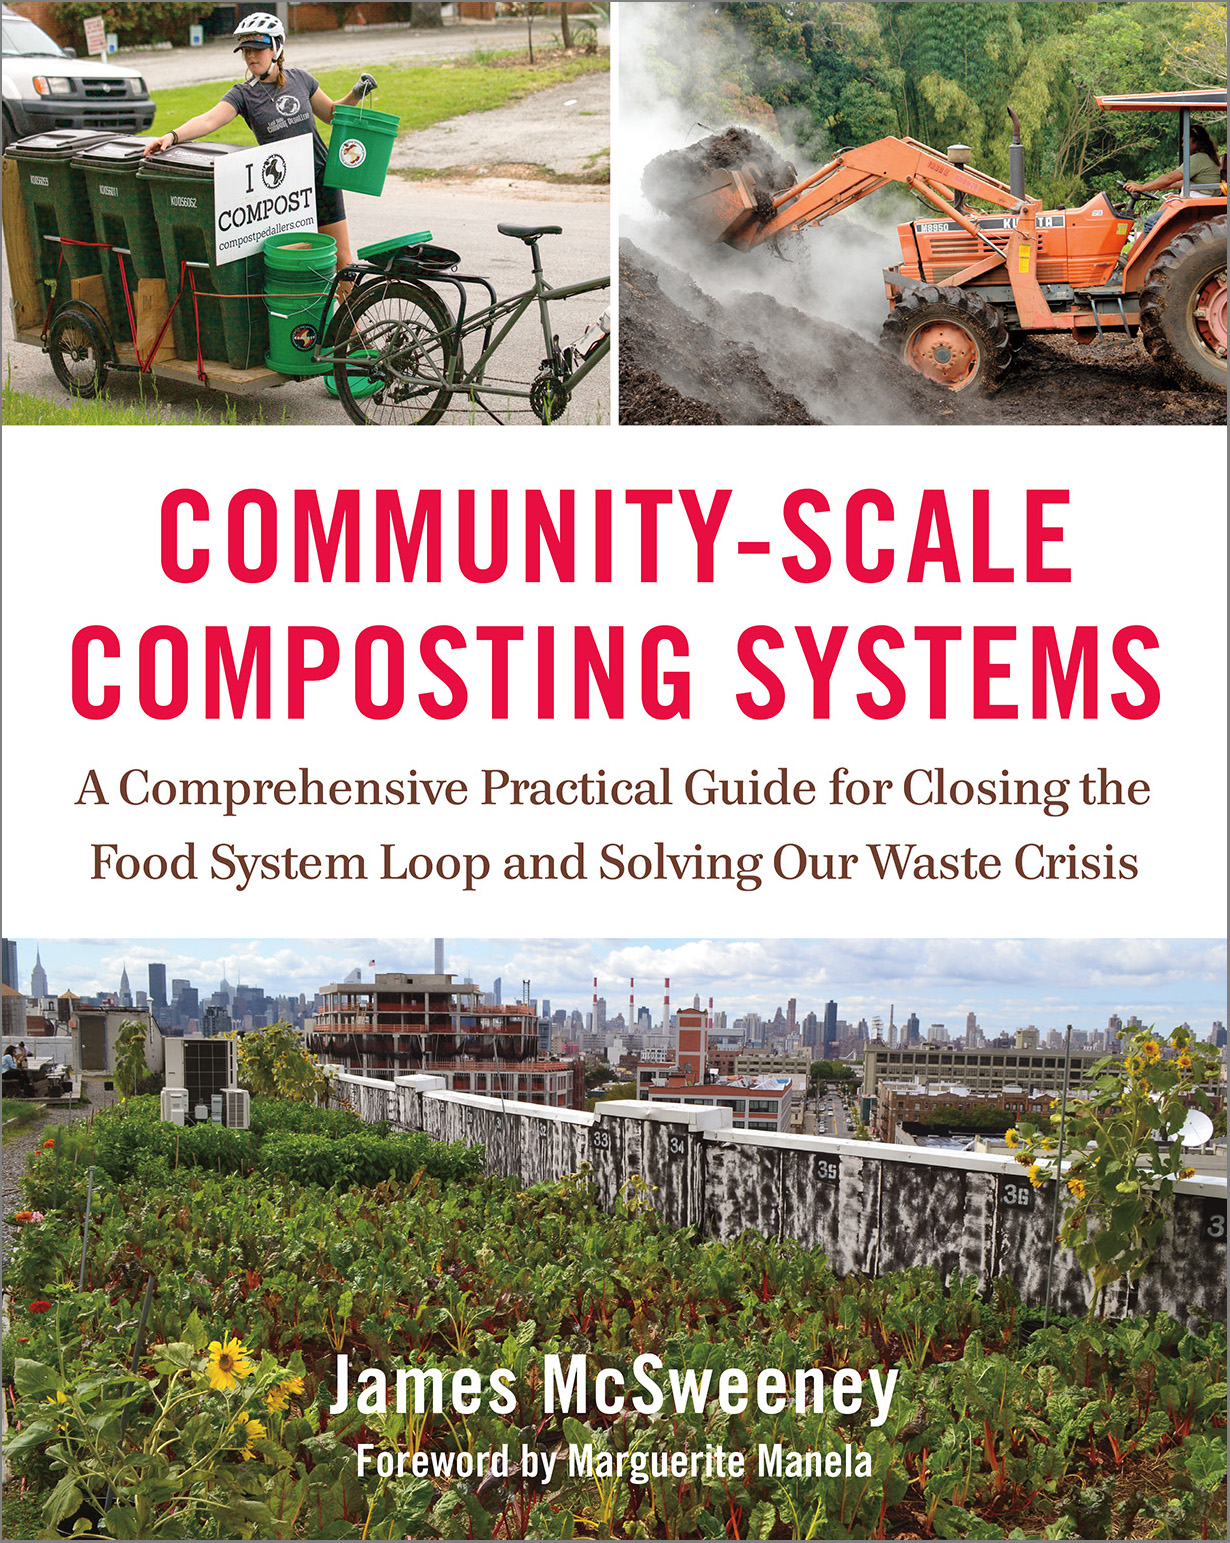 The Community-Scale Composting Systems cover